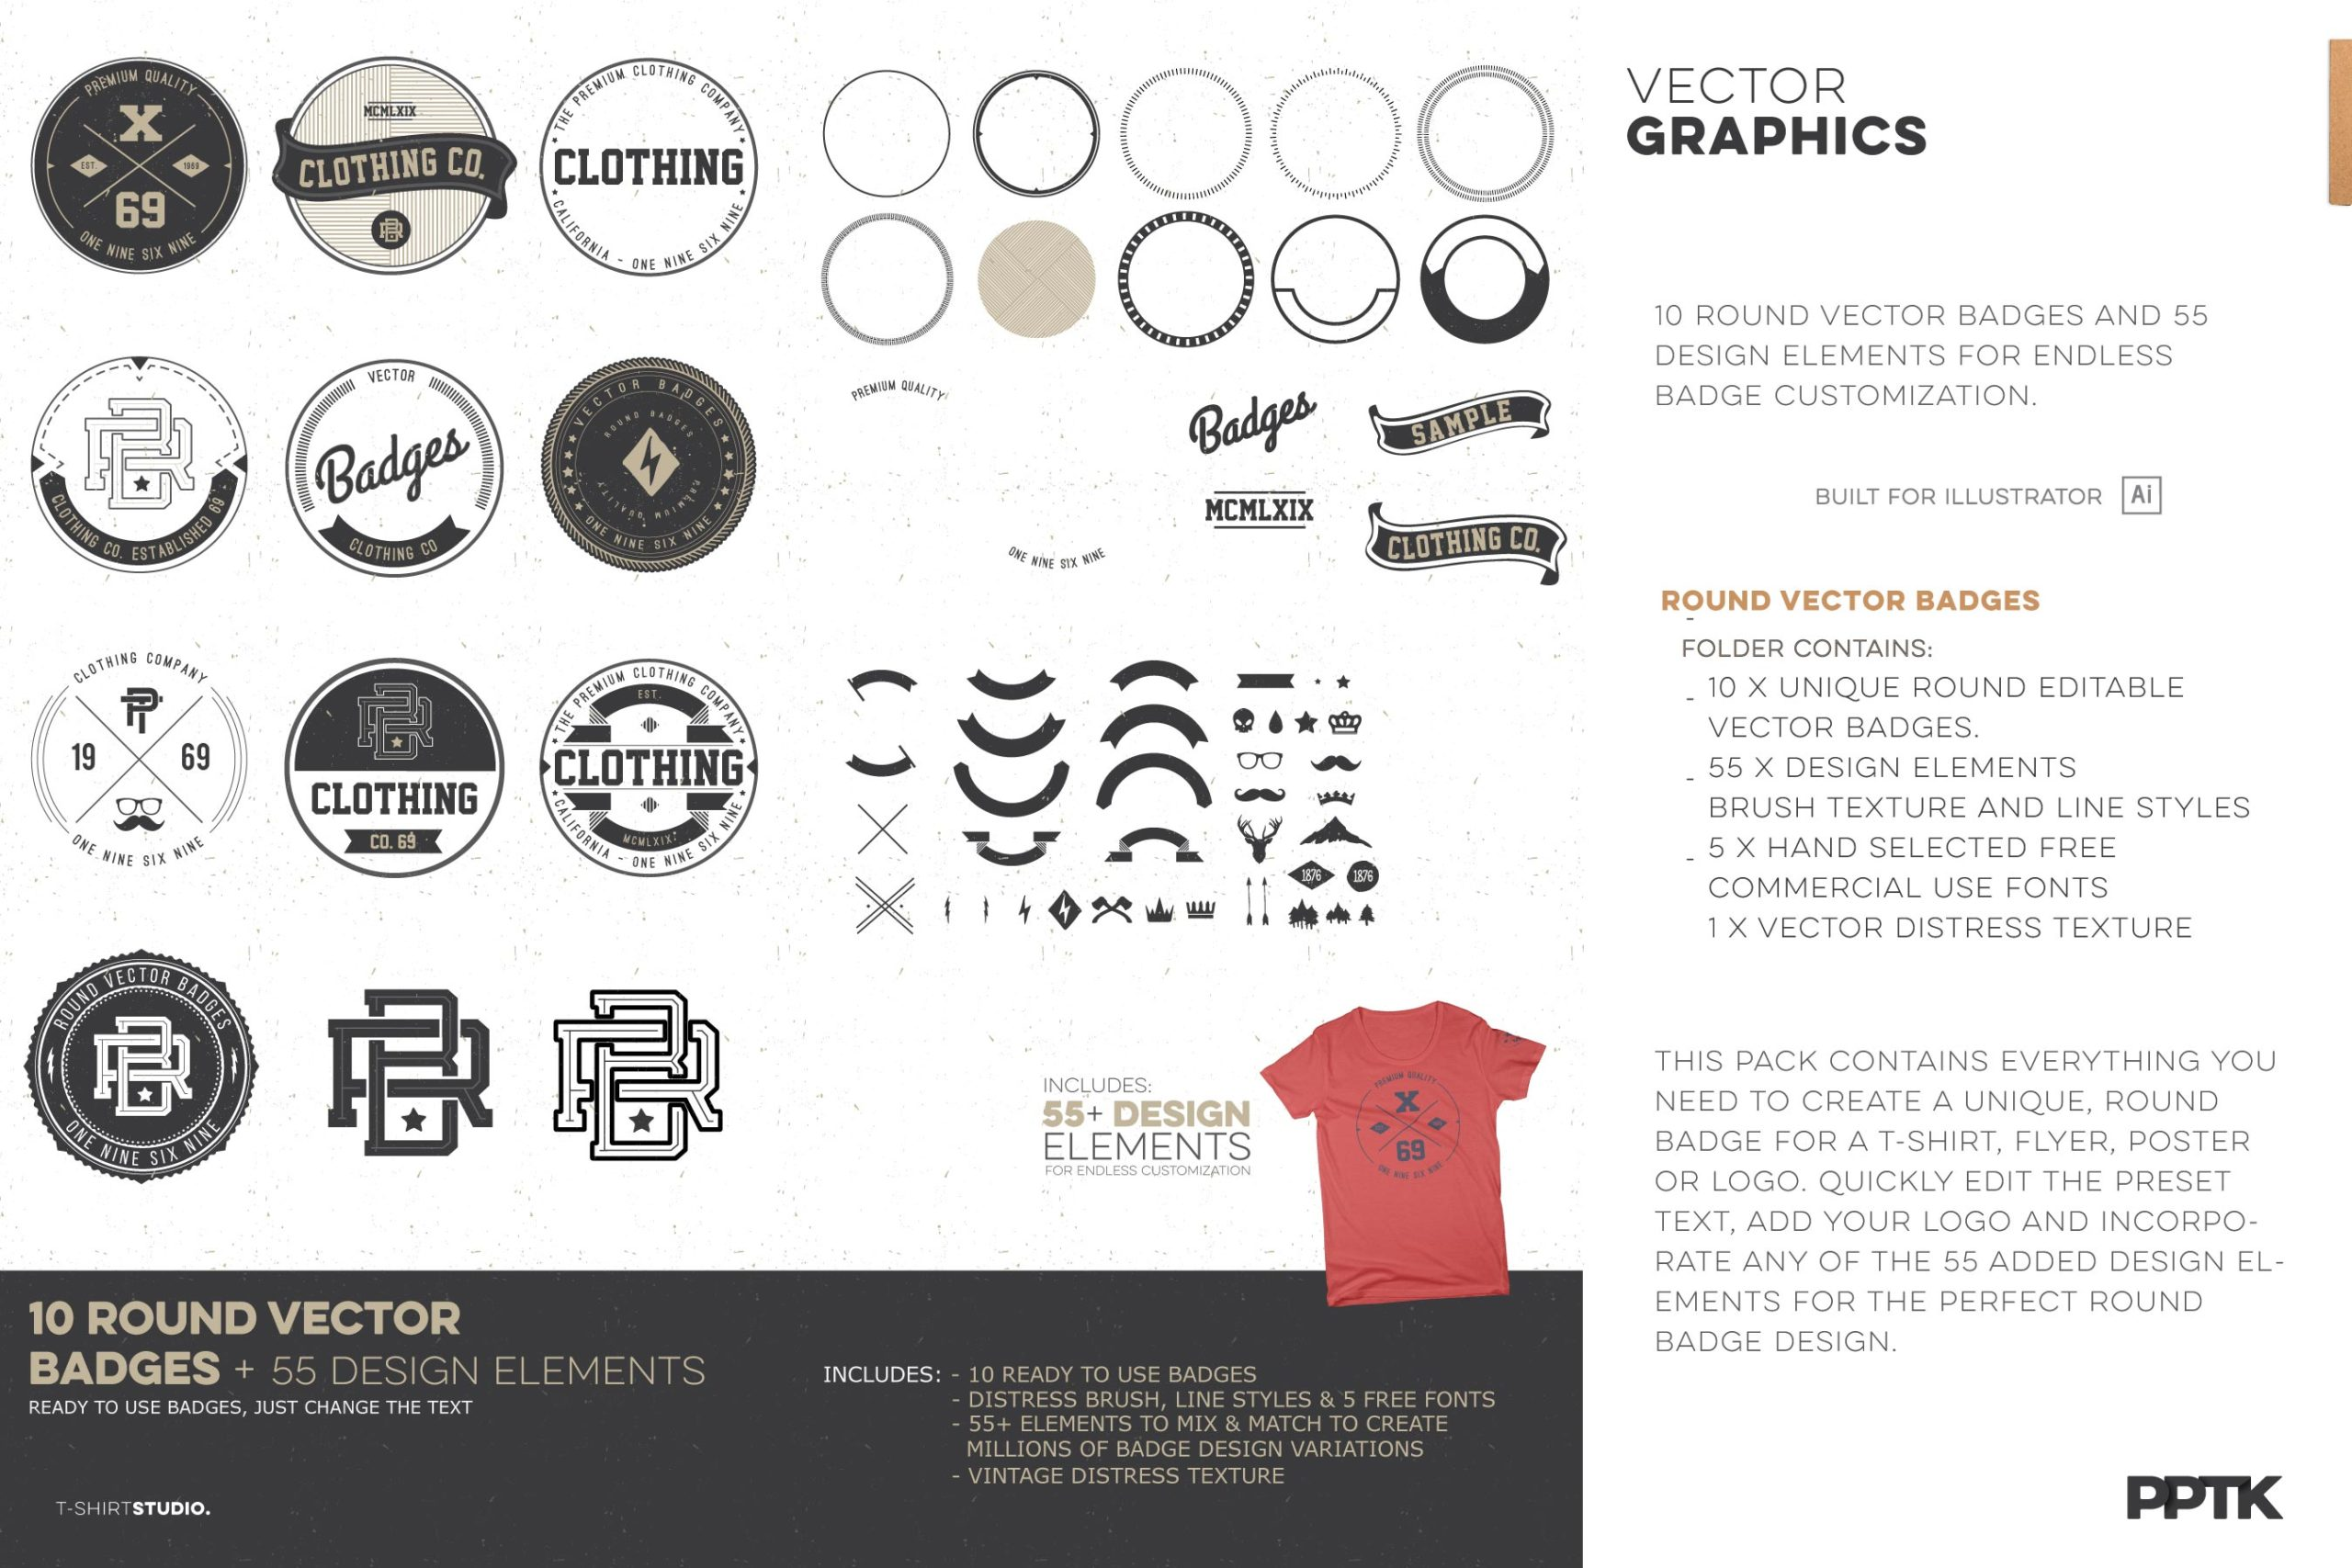 t shirt design studio pro clothing round vector badges vintage logos 06